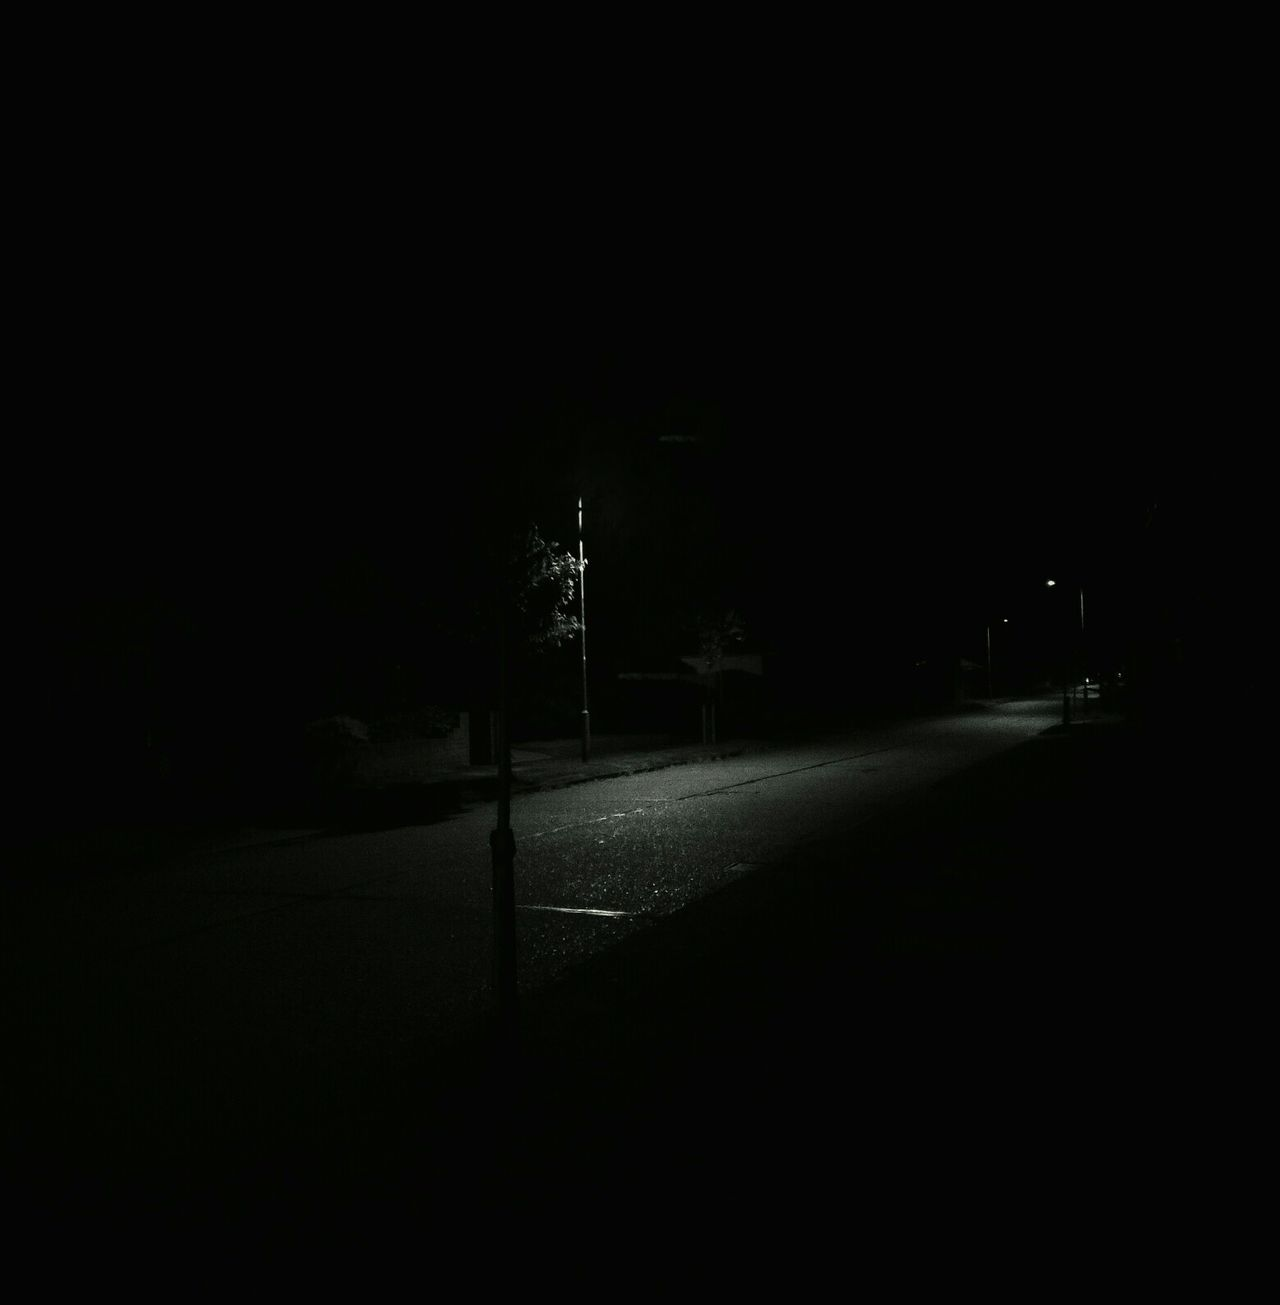 New street lights turn everywhere into nowhere. Drama Dramatic Black And White Photography Blackandwhite Black And White Night Streets At Night Eerie Eerie Scene Eerie Night Cities At Night Lonliness Voids Nowhere Empty Places